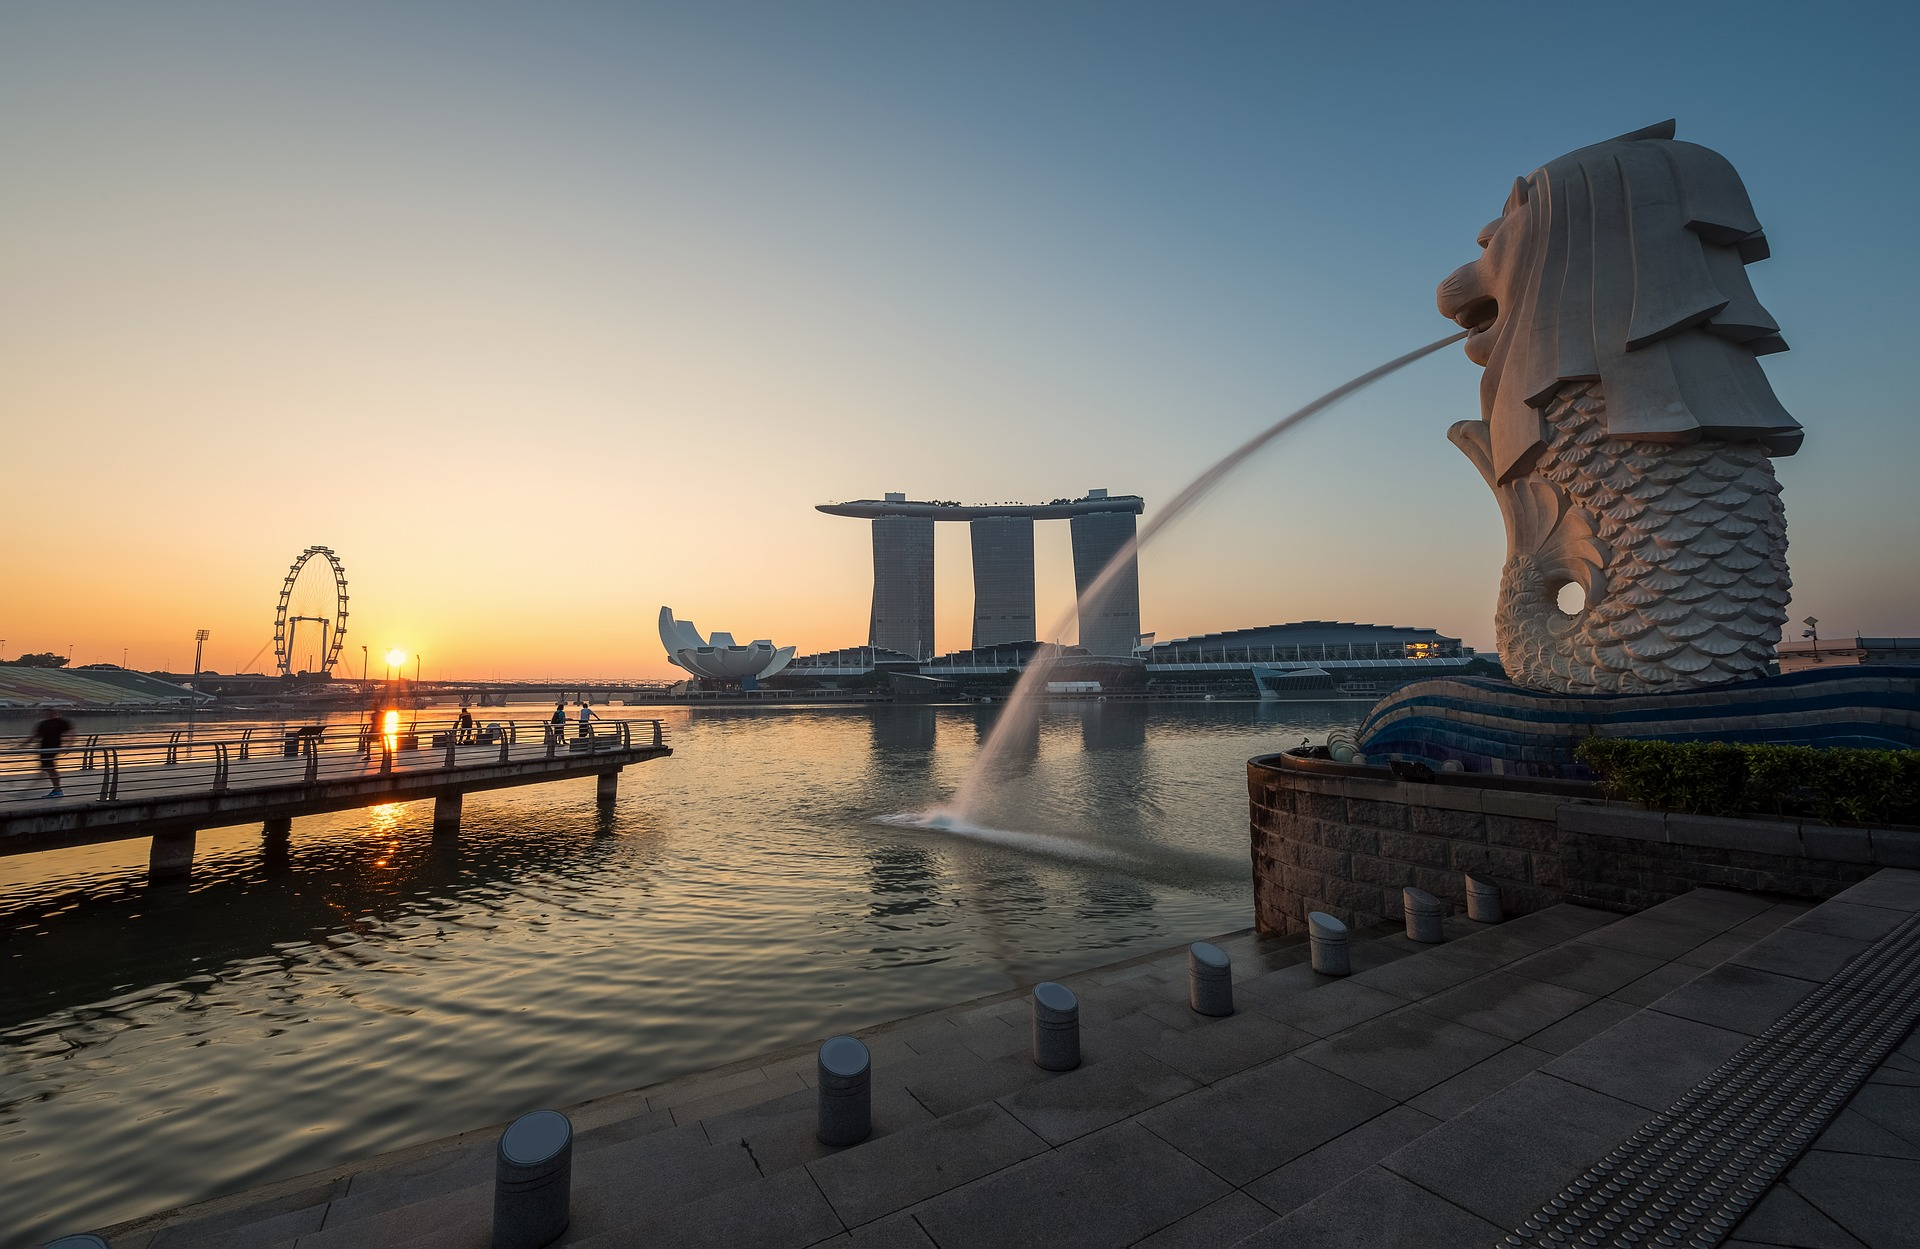 Singapore ranked 40th in 2019 Global Liveability Index. Photo courtesy: Pixabay